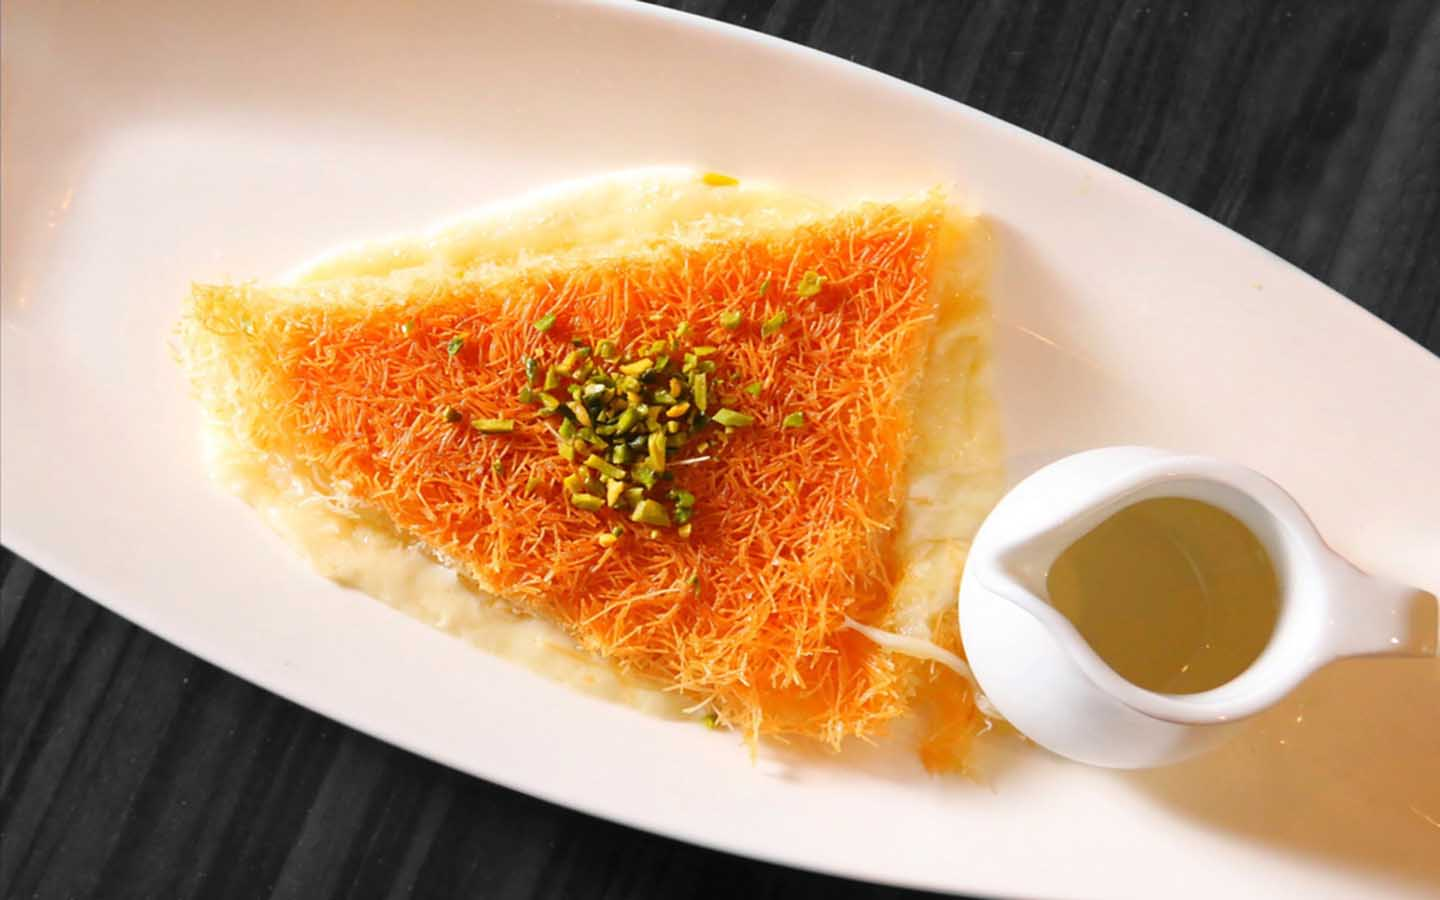 Kunafa on a plate with extra sweet syrup